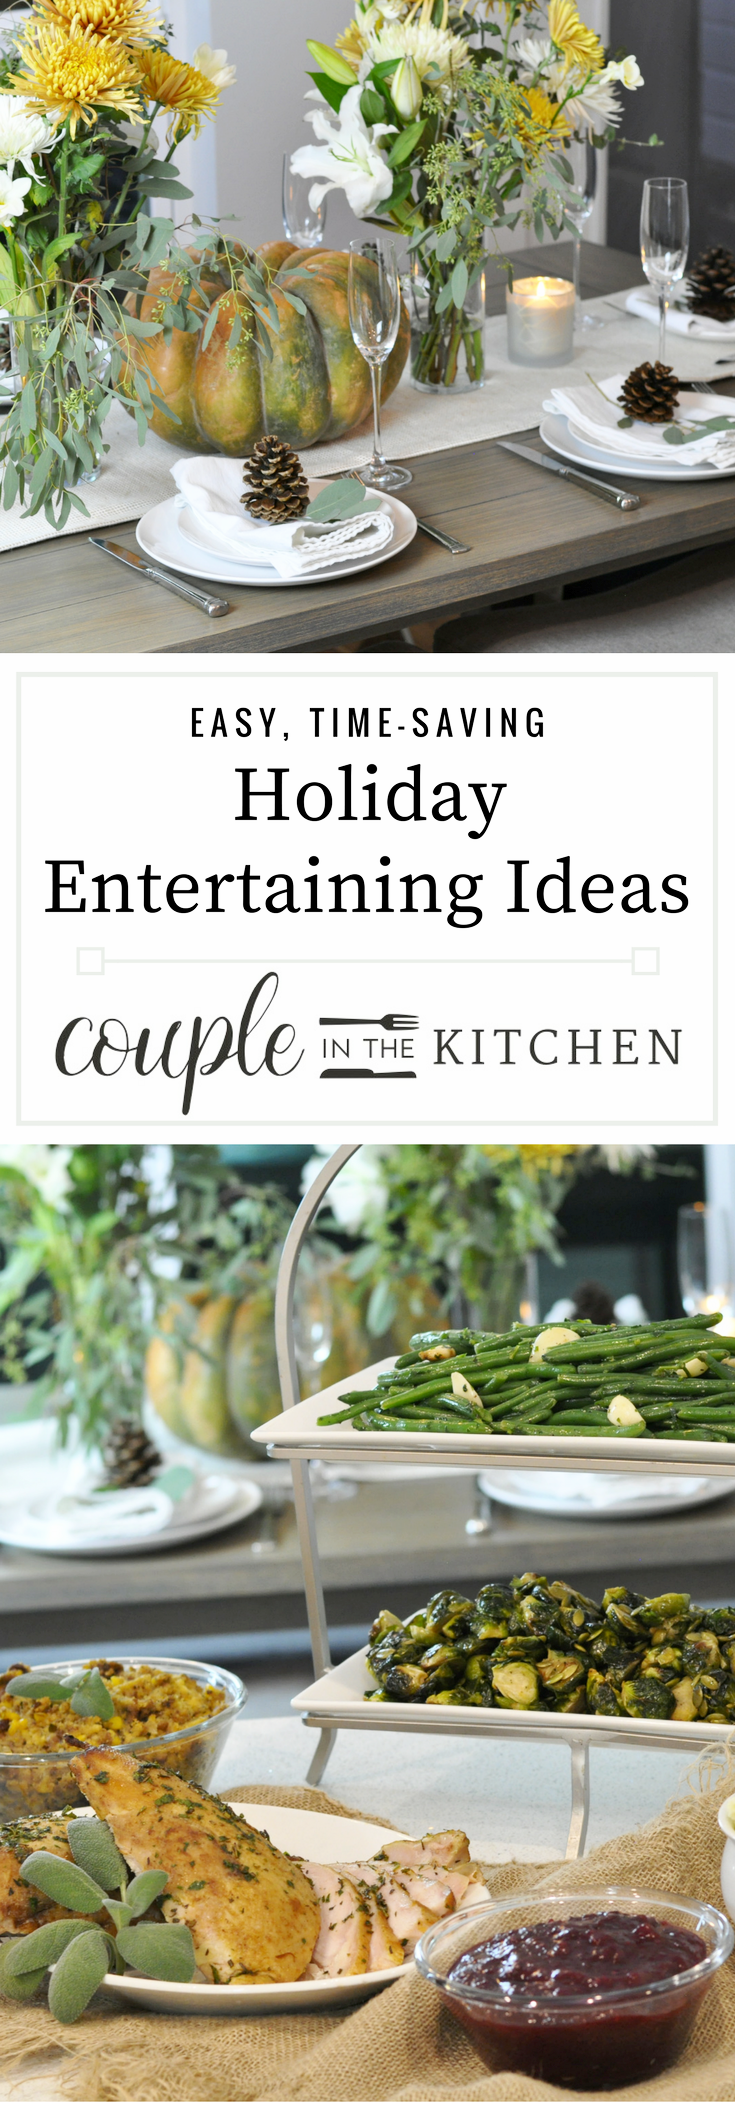 Entertaining Dinner Ideas | Three Time Saving Holiday Ideas | coupleinthekitchen,com